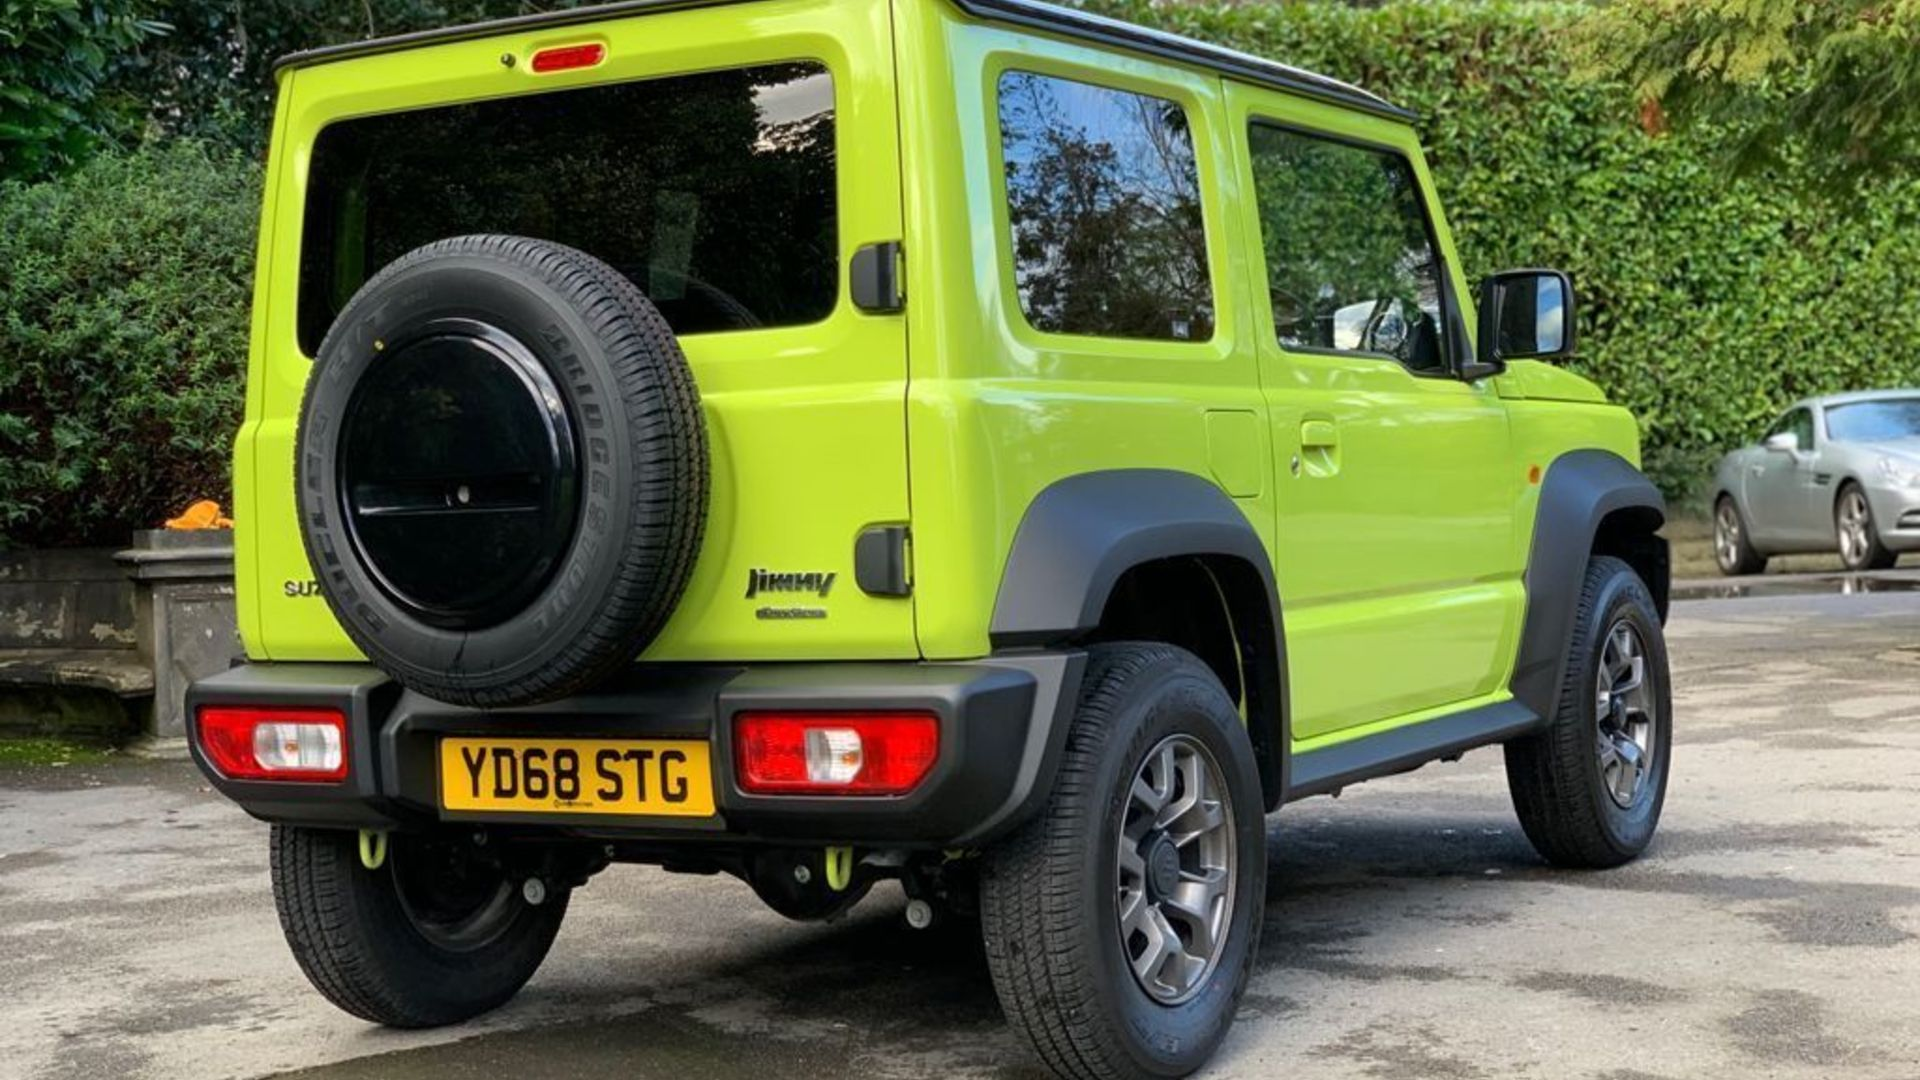 Suzuki Jimny mark-up